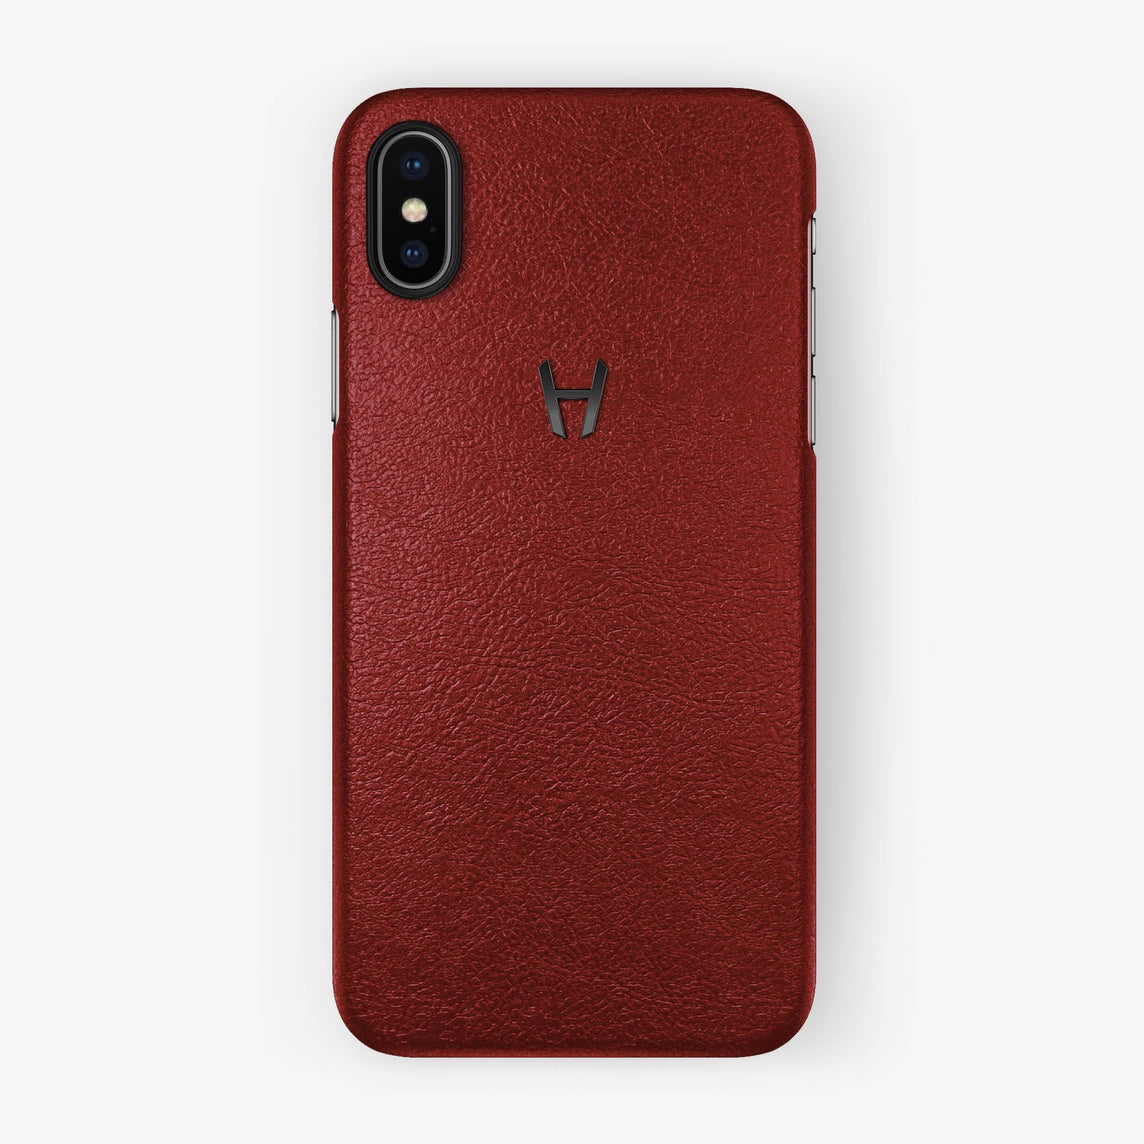 Red Calfskin iPhone Case for iPhone X finishing black - Hadoro Luxury Cases